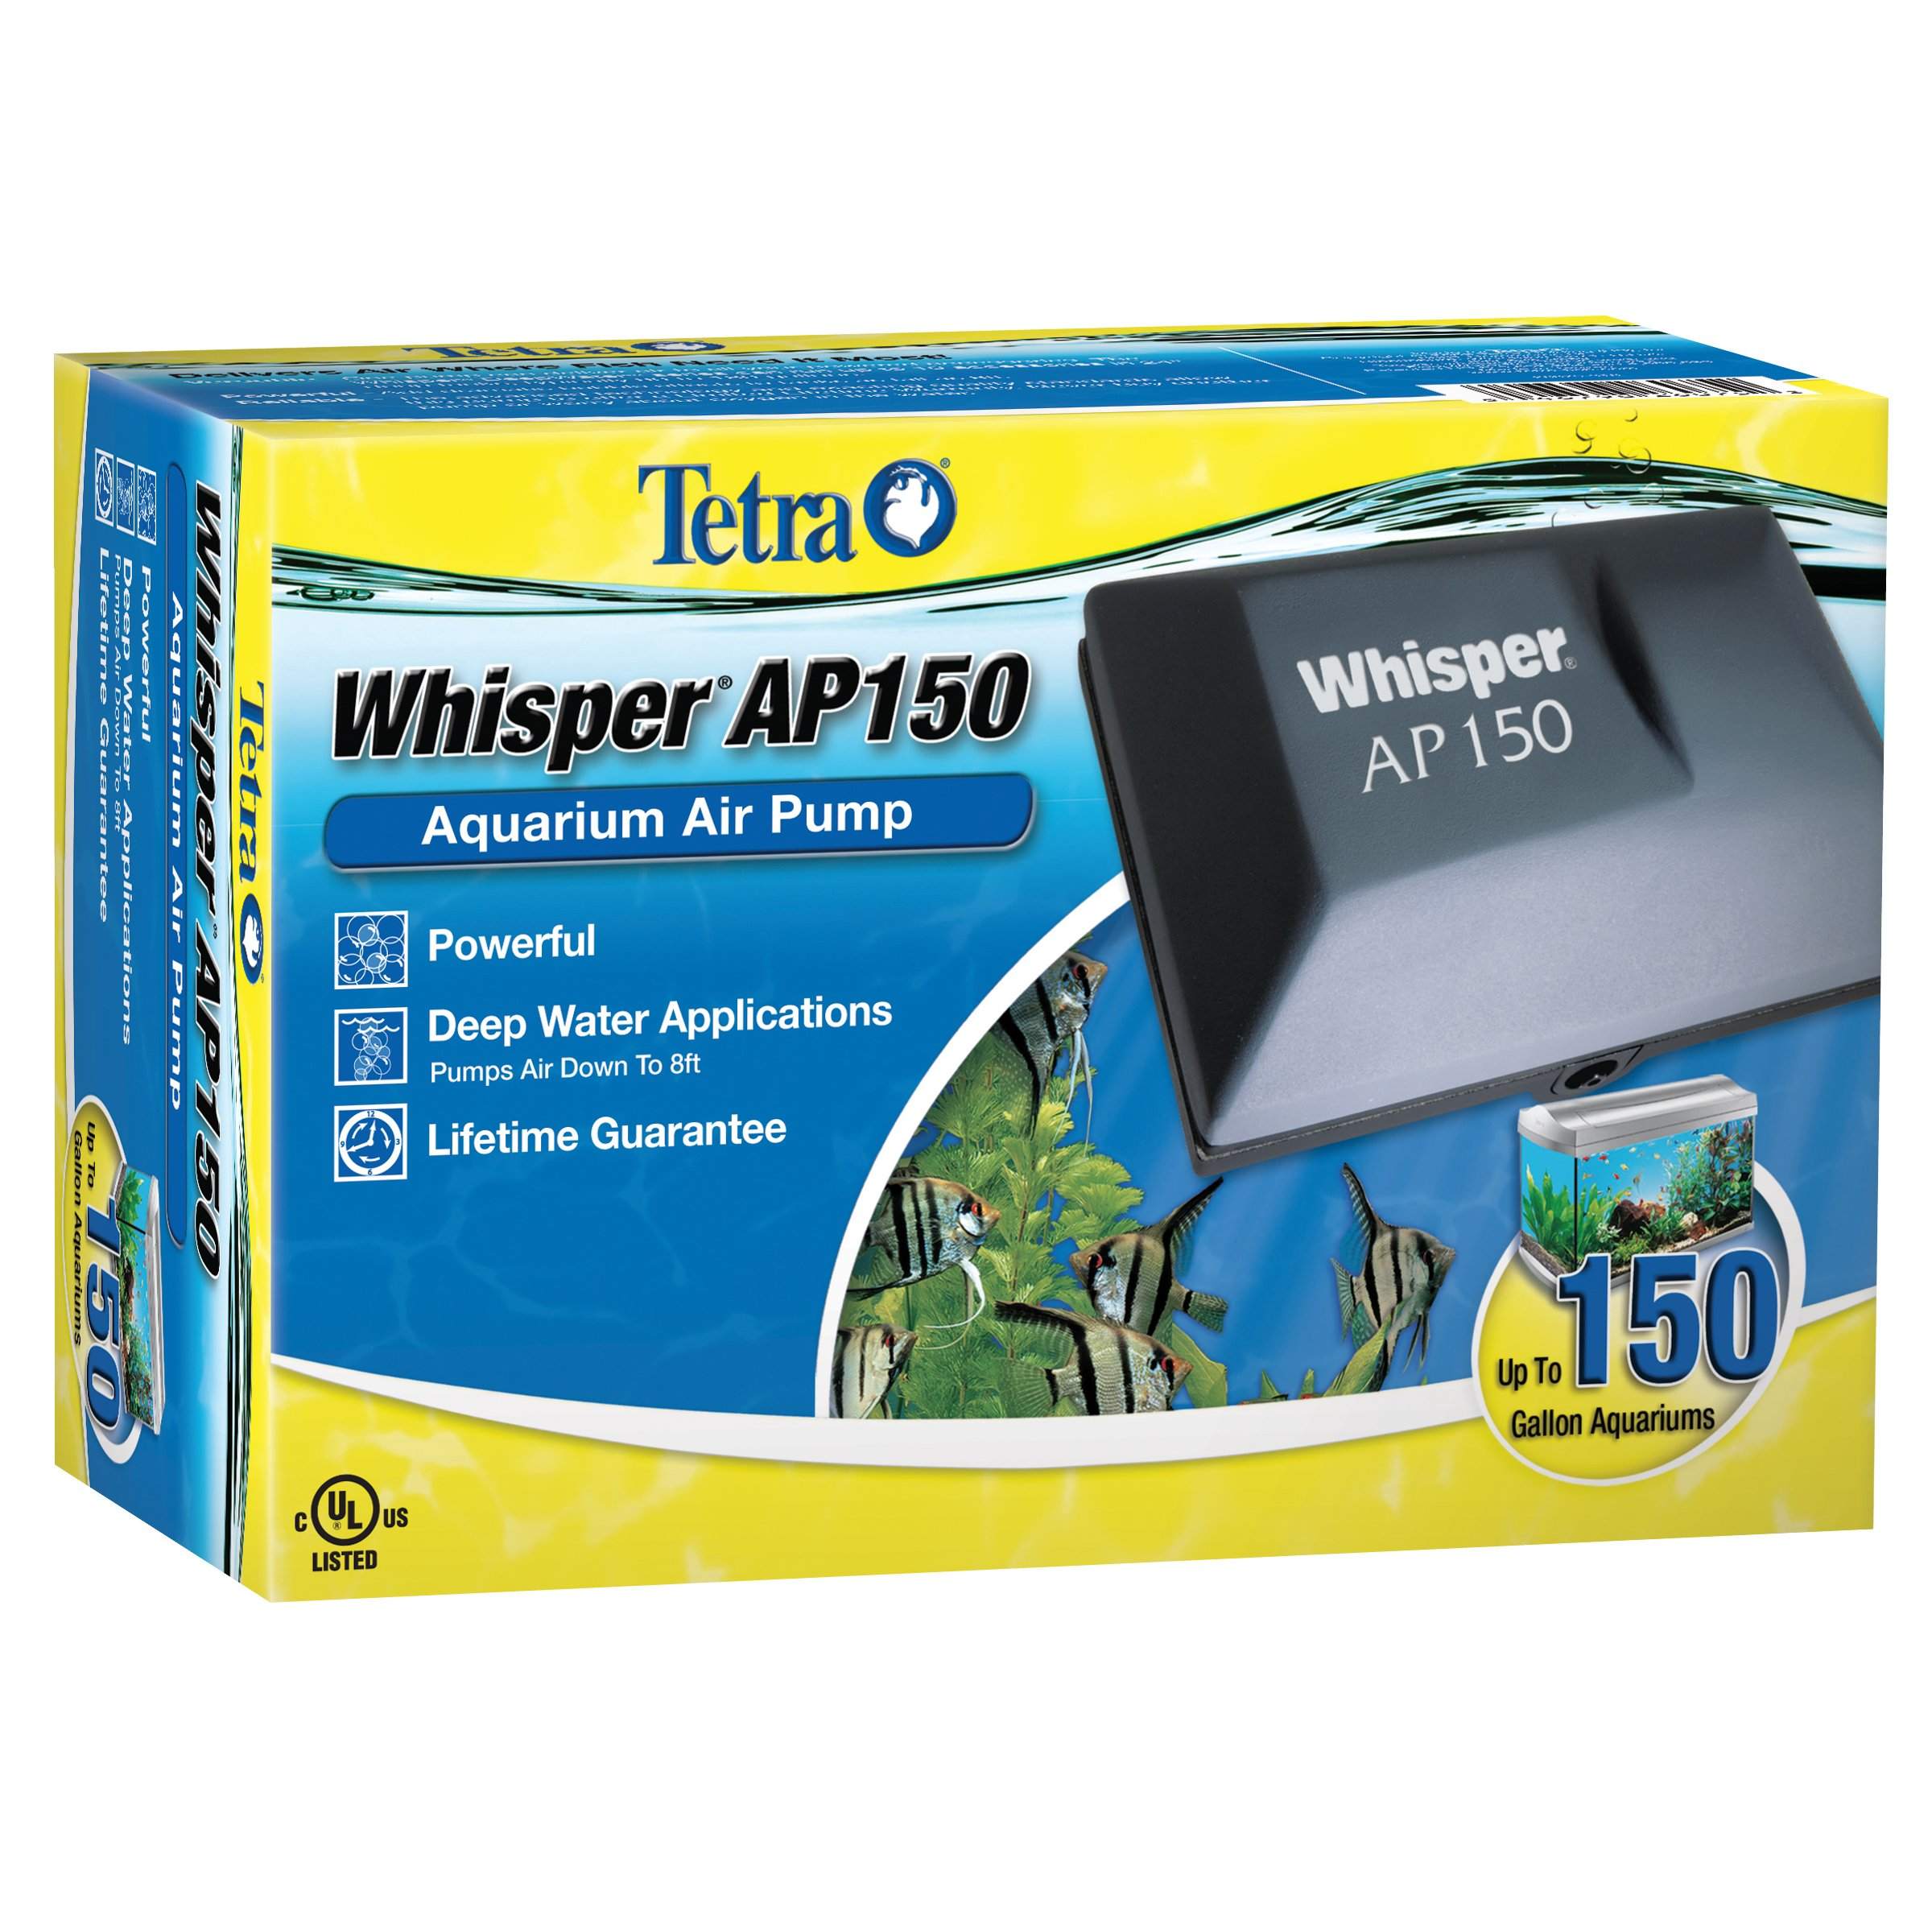 Tetra Whisper AP150 Aquarium Applications